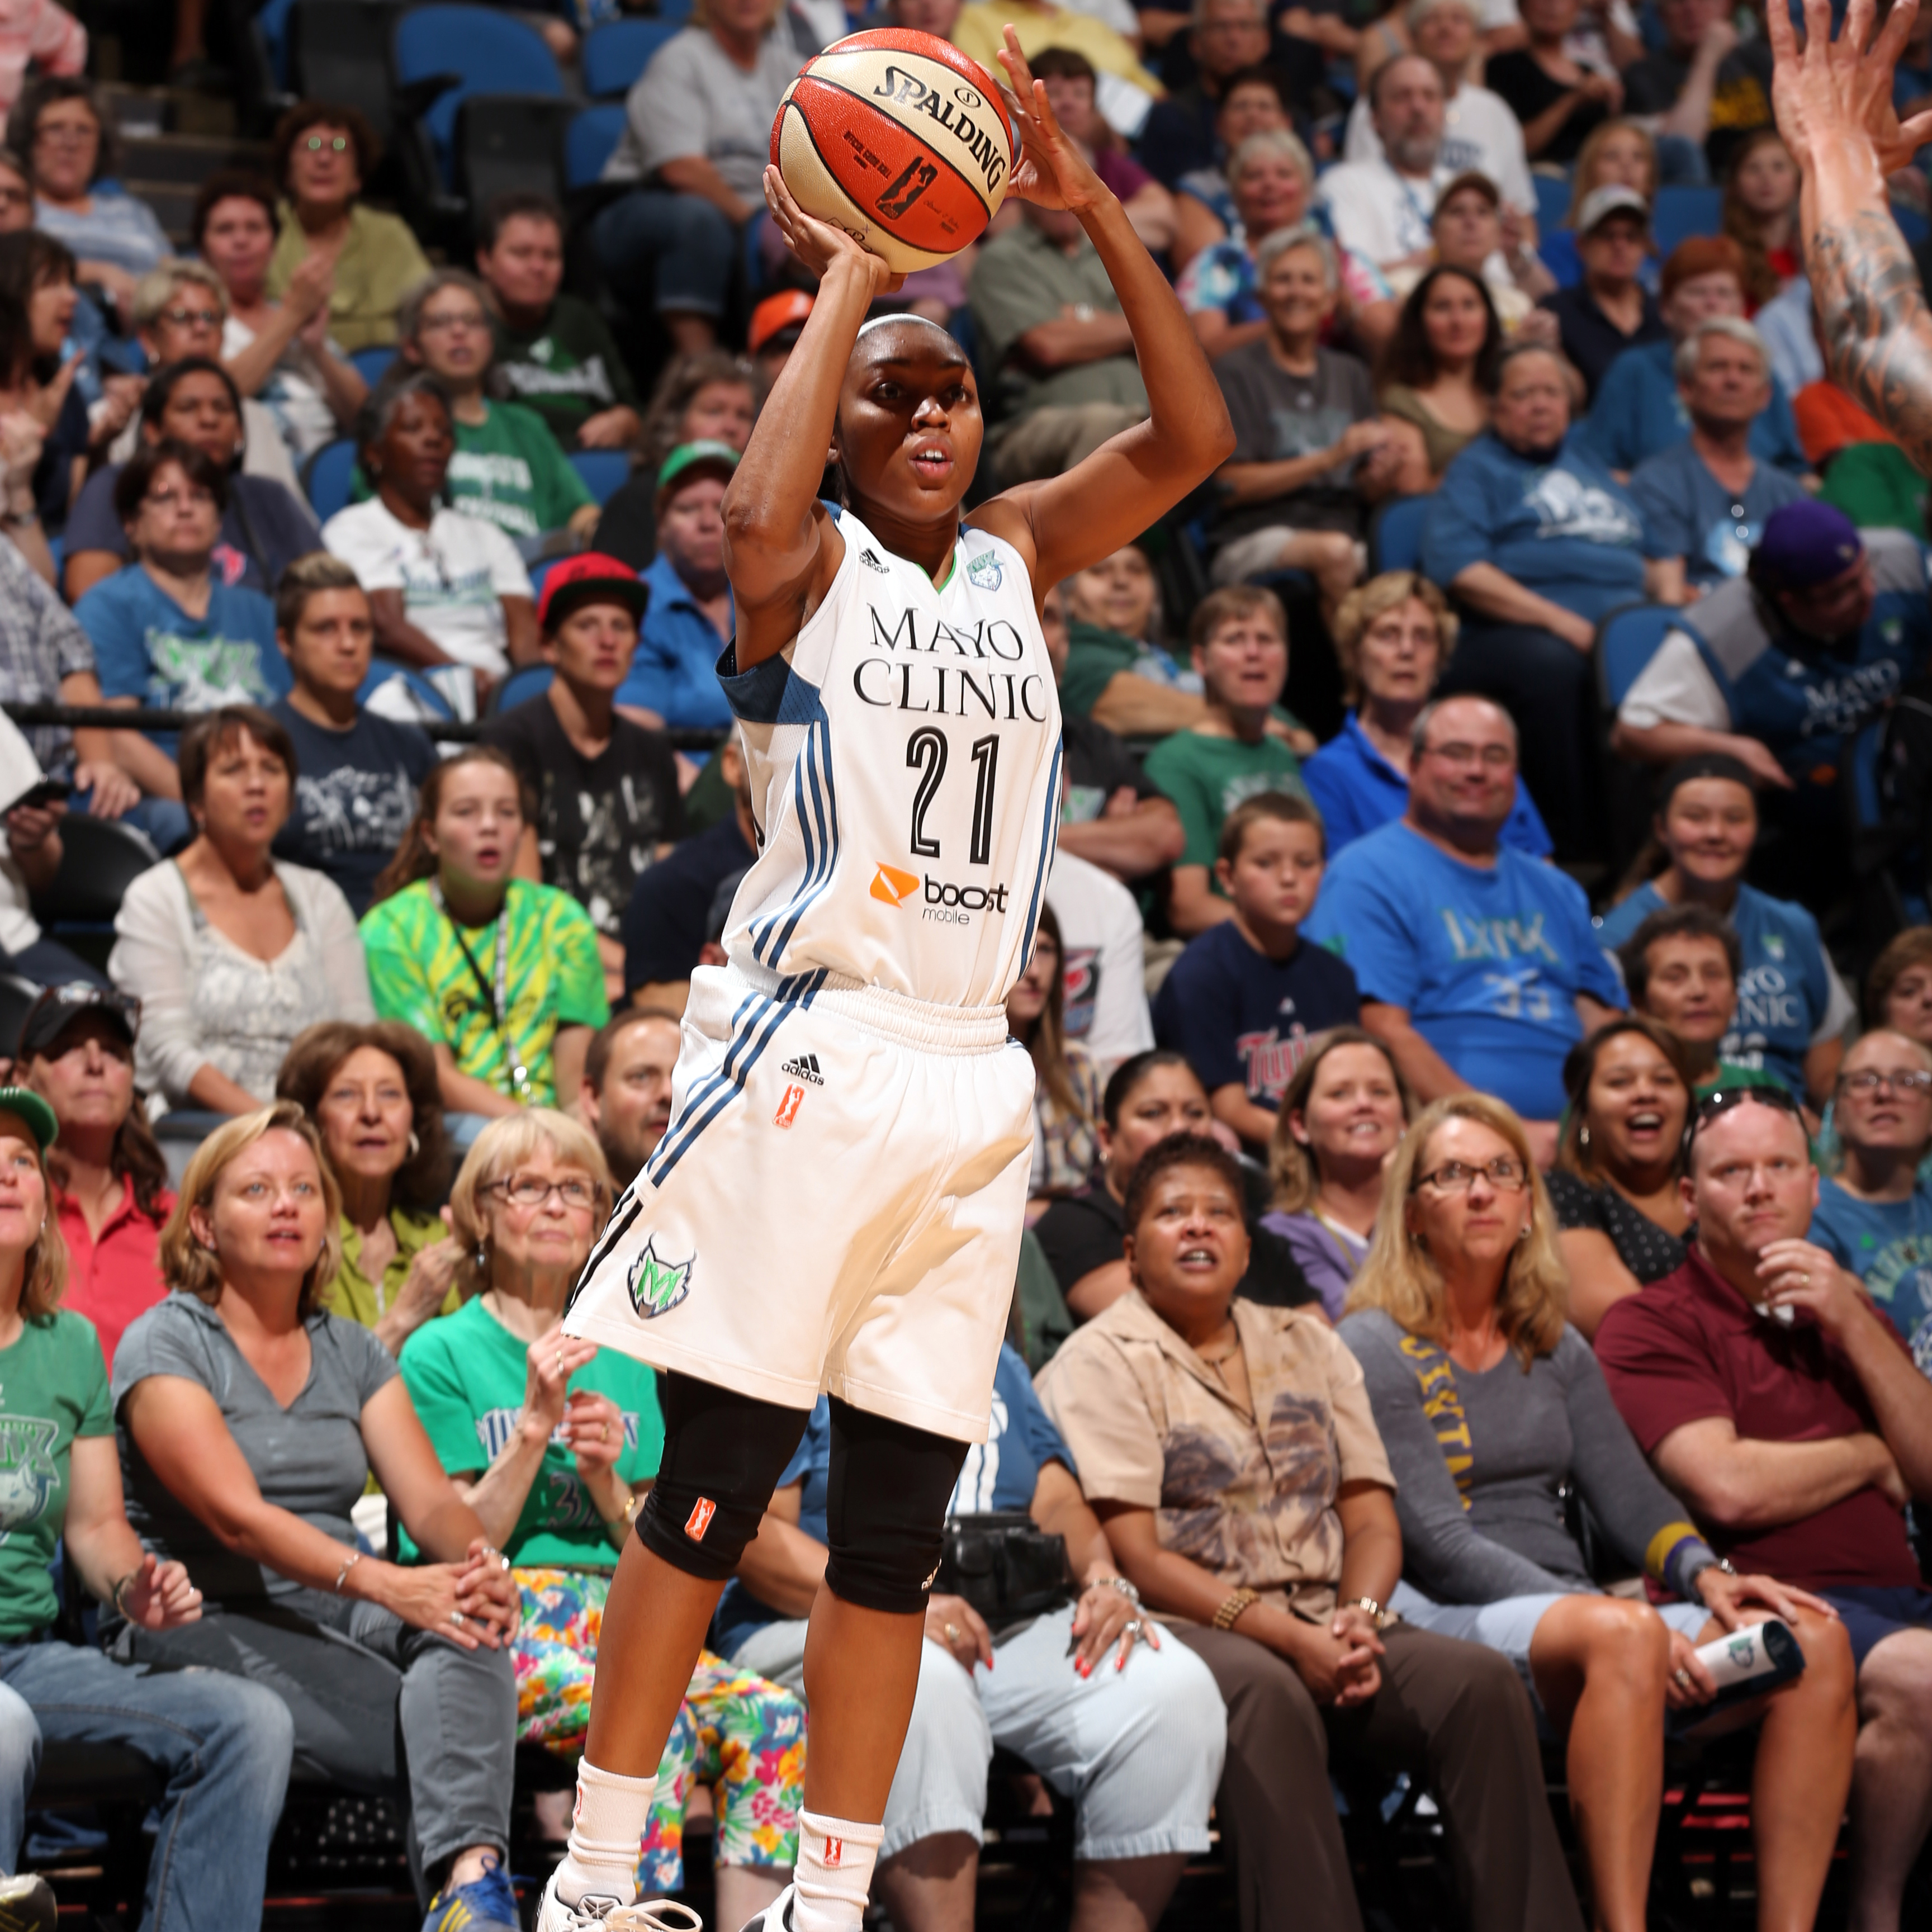 Lynx guard Renee Montgomery had a great night off the bench for the Lynx, finishing with 15 points, two assists and two steals.